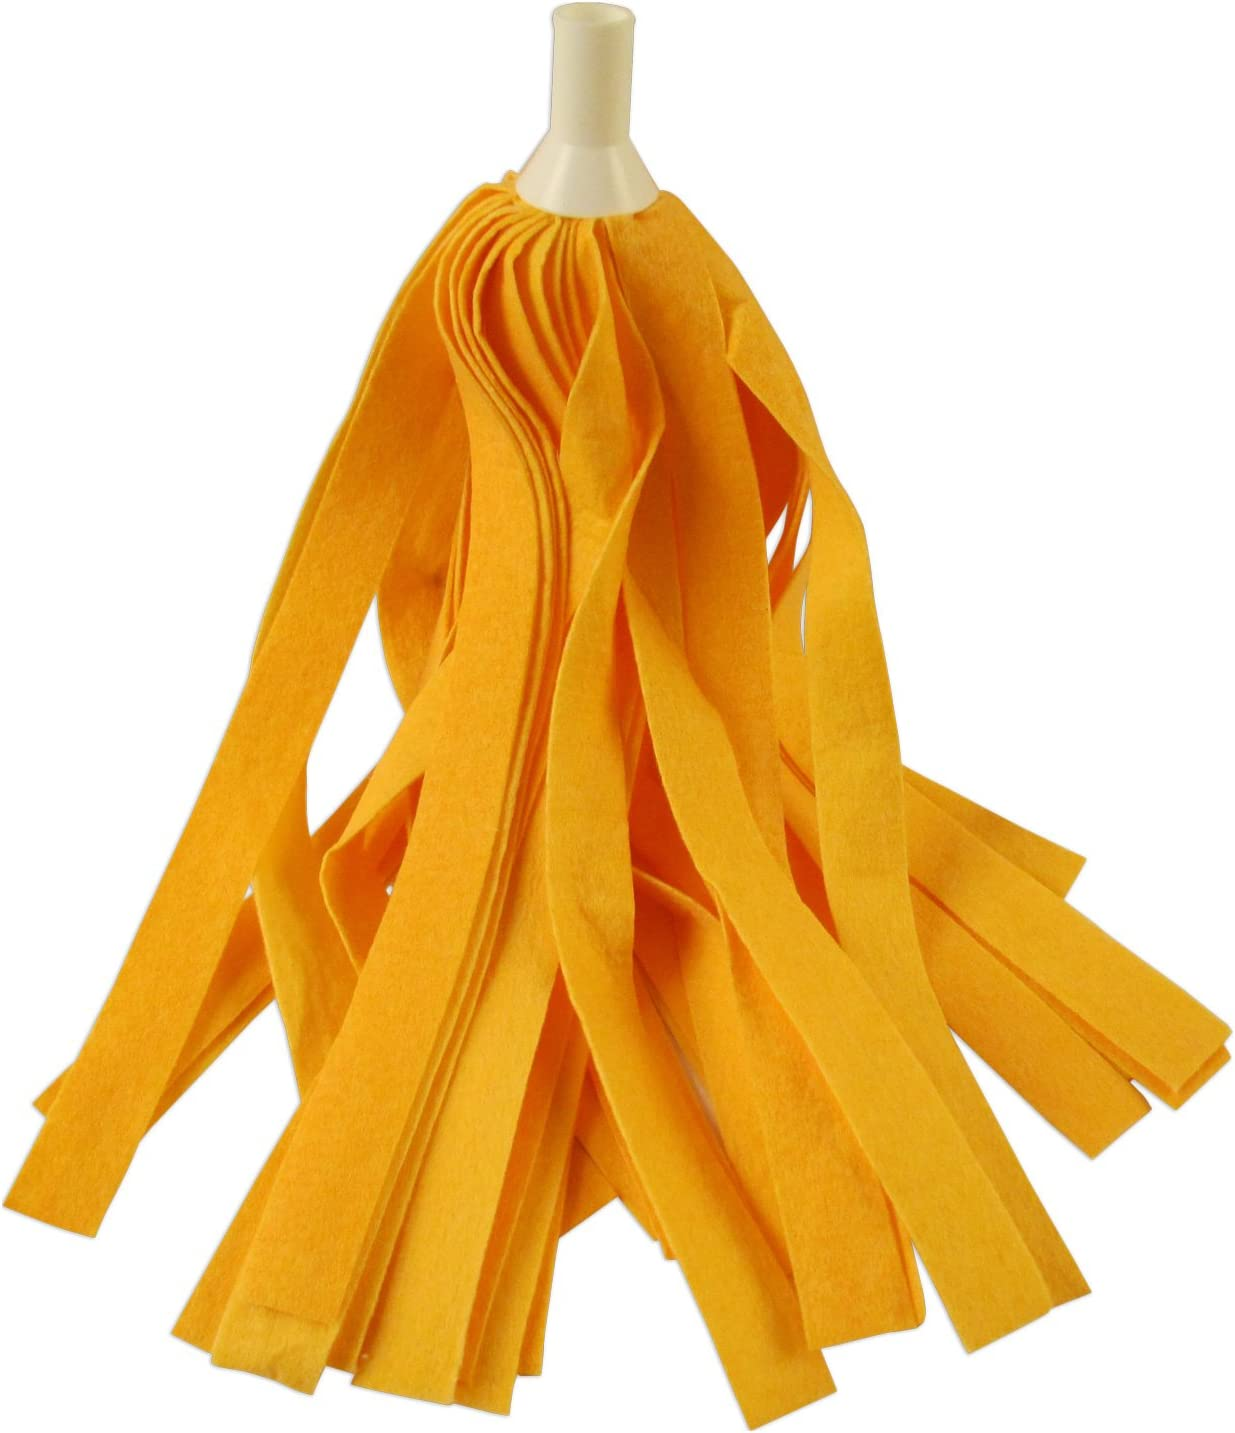 Jacksonville Mall STAR BRITE Super Absorbent Chamois Mop Connect Fits Louisville-Jefferson County Mall - All Quick